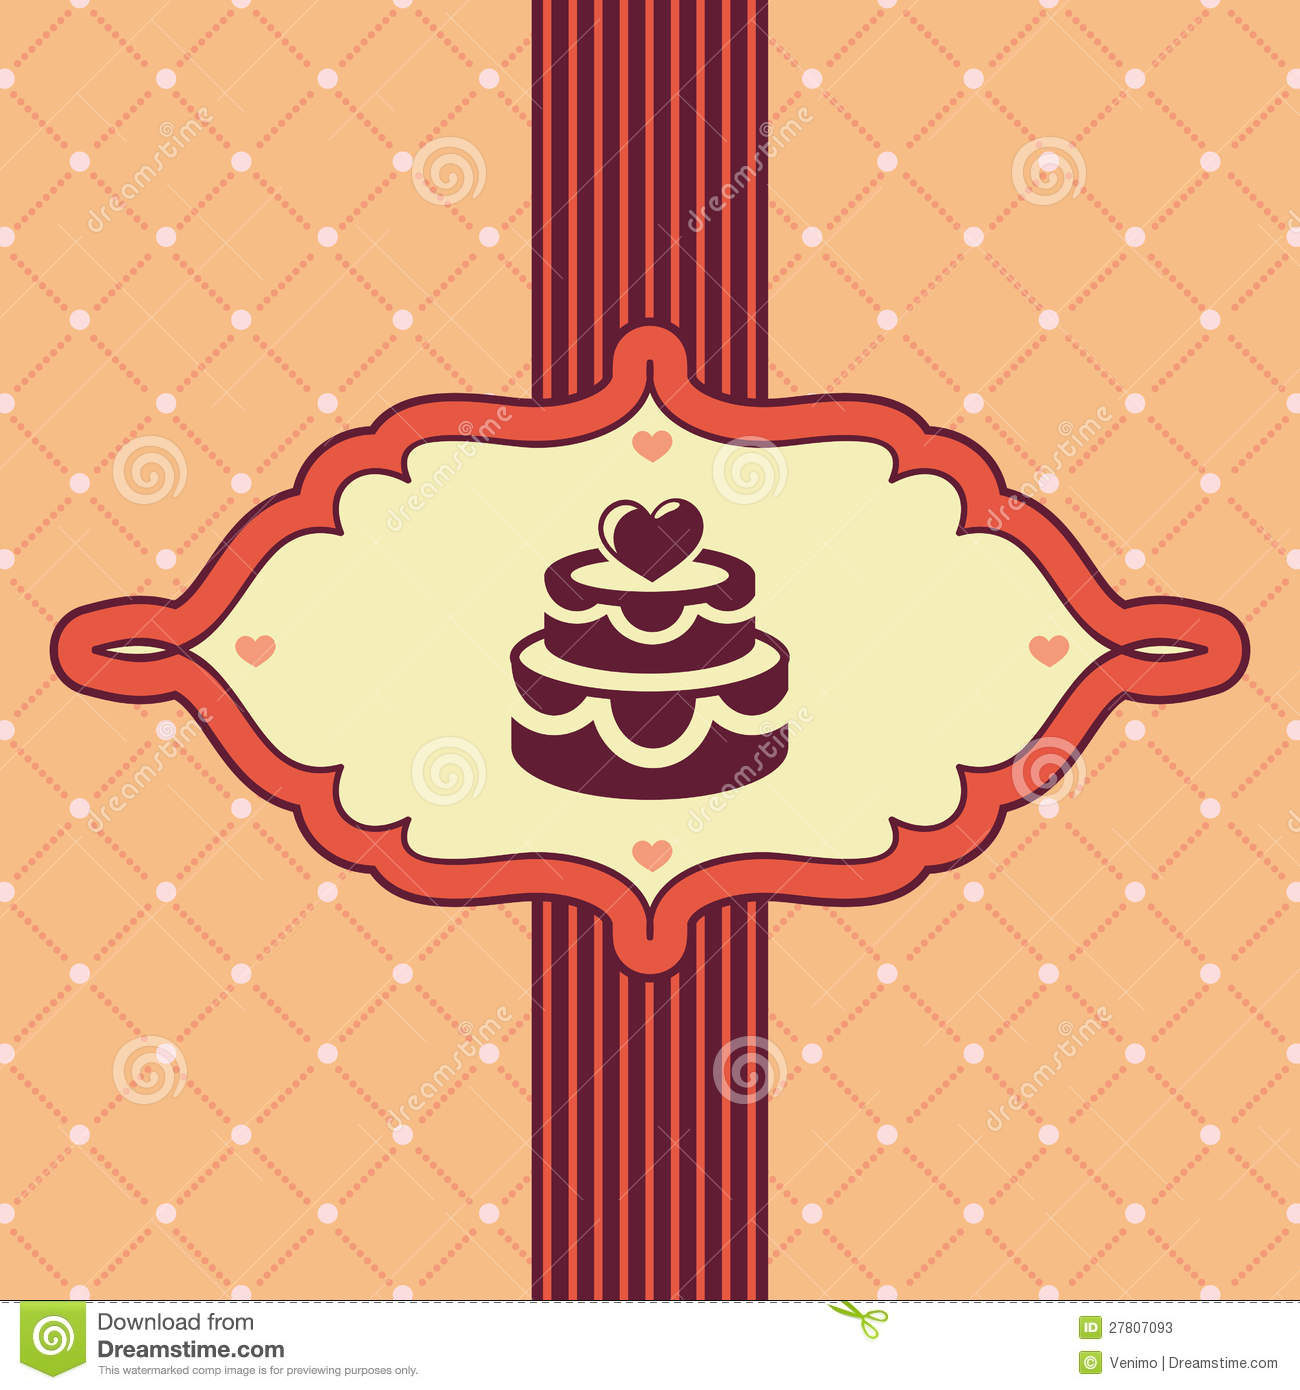 Vector vintage greeting card with wedding cake - background.